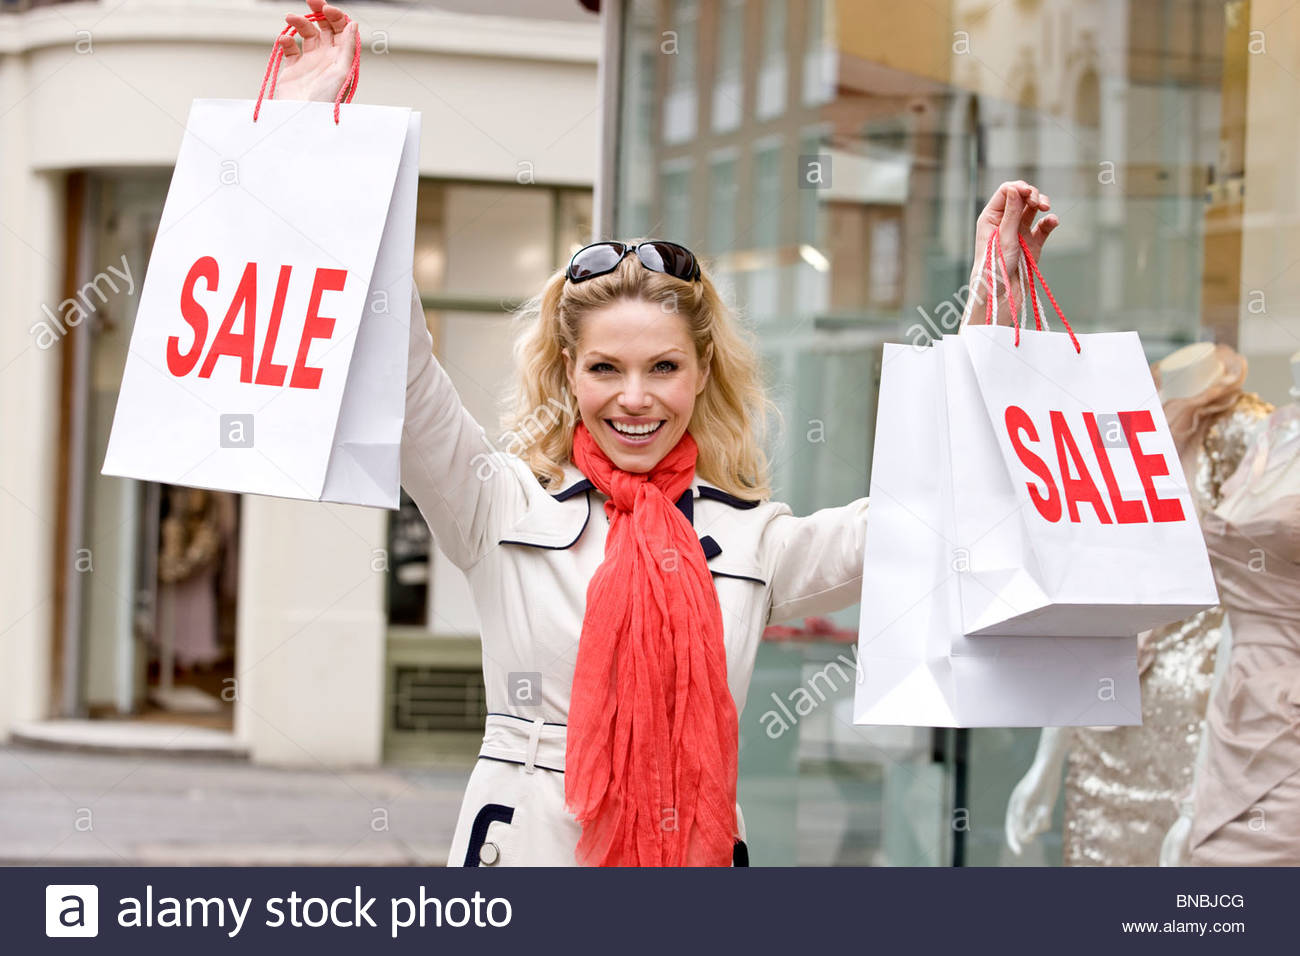 A mid adult woman holding up some sale bags, smiling - Stock Image